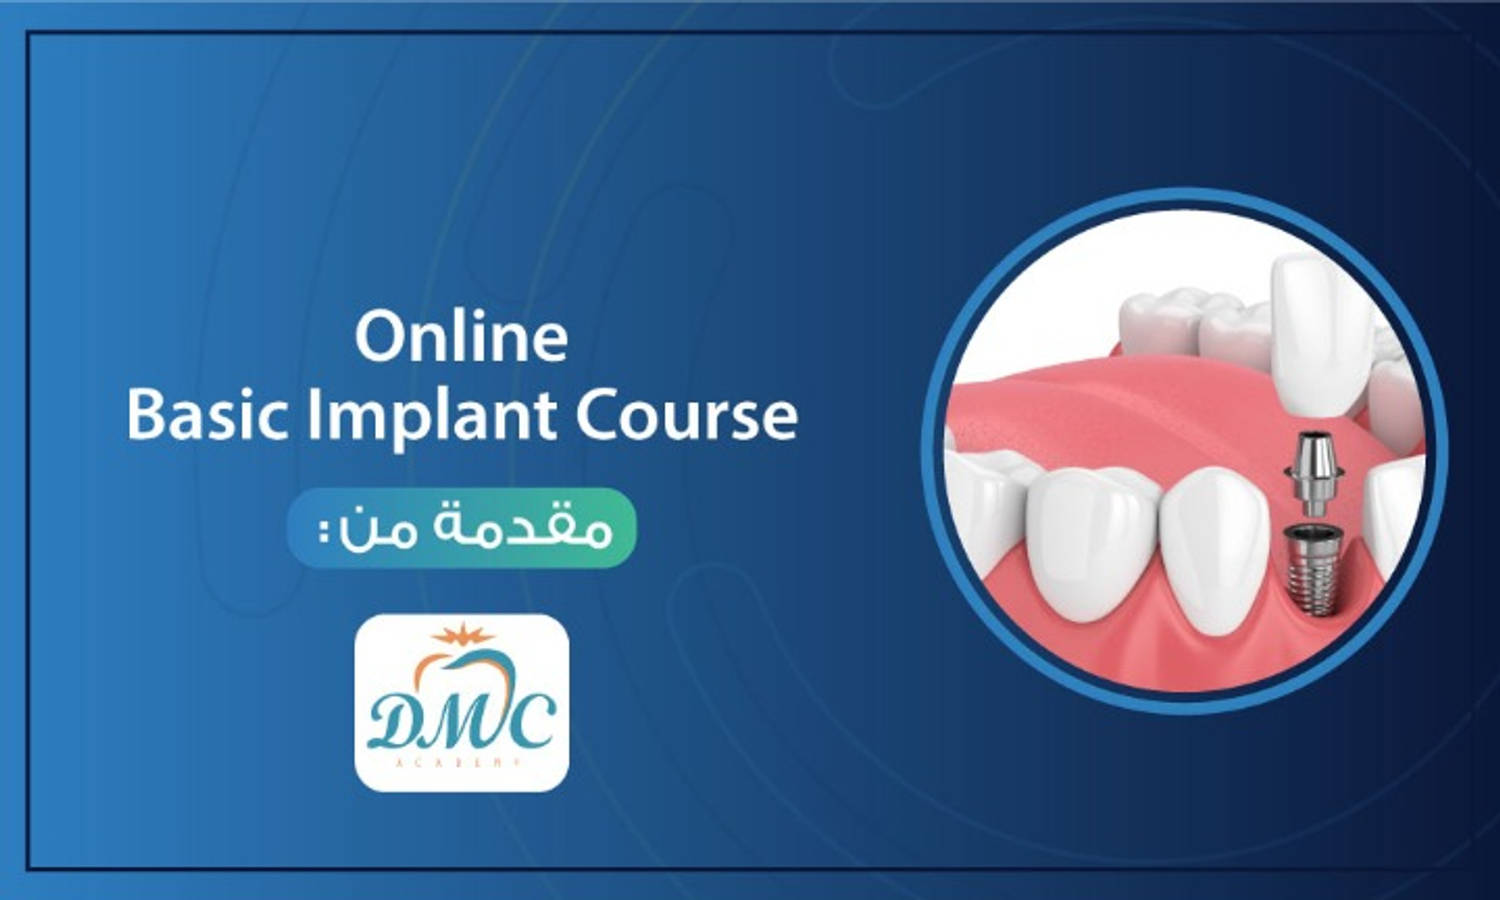 Online Basic Implant Course